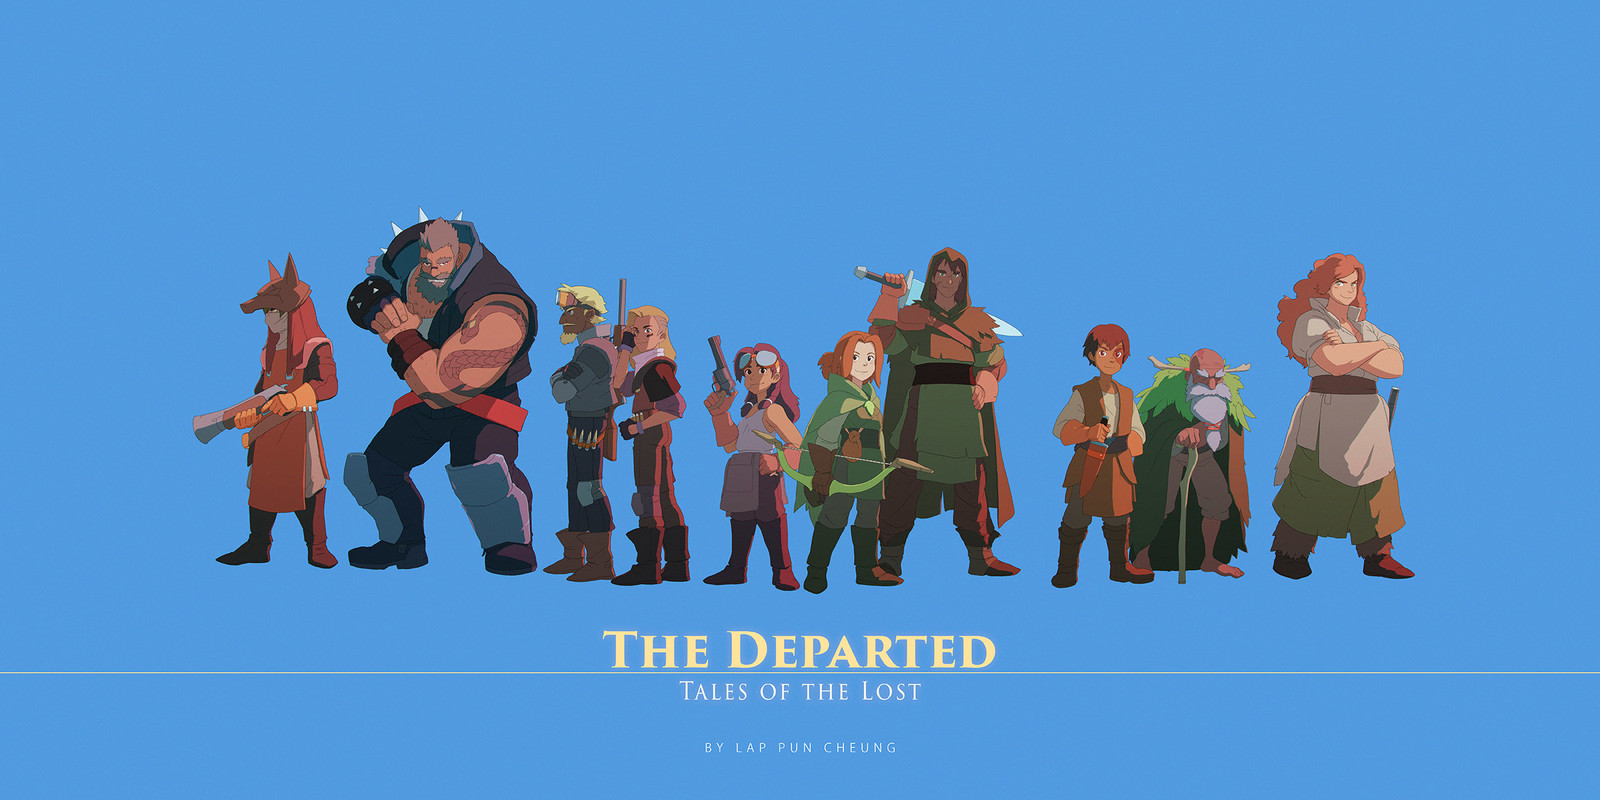 The Departed: Tales of the Lost - The Cast